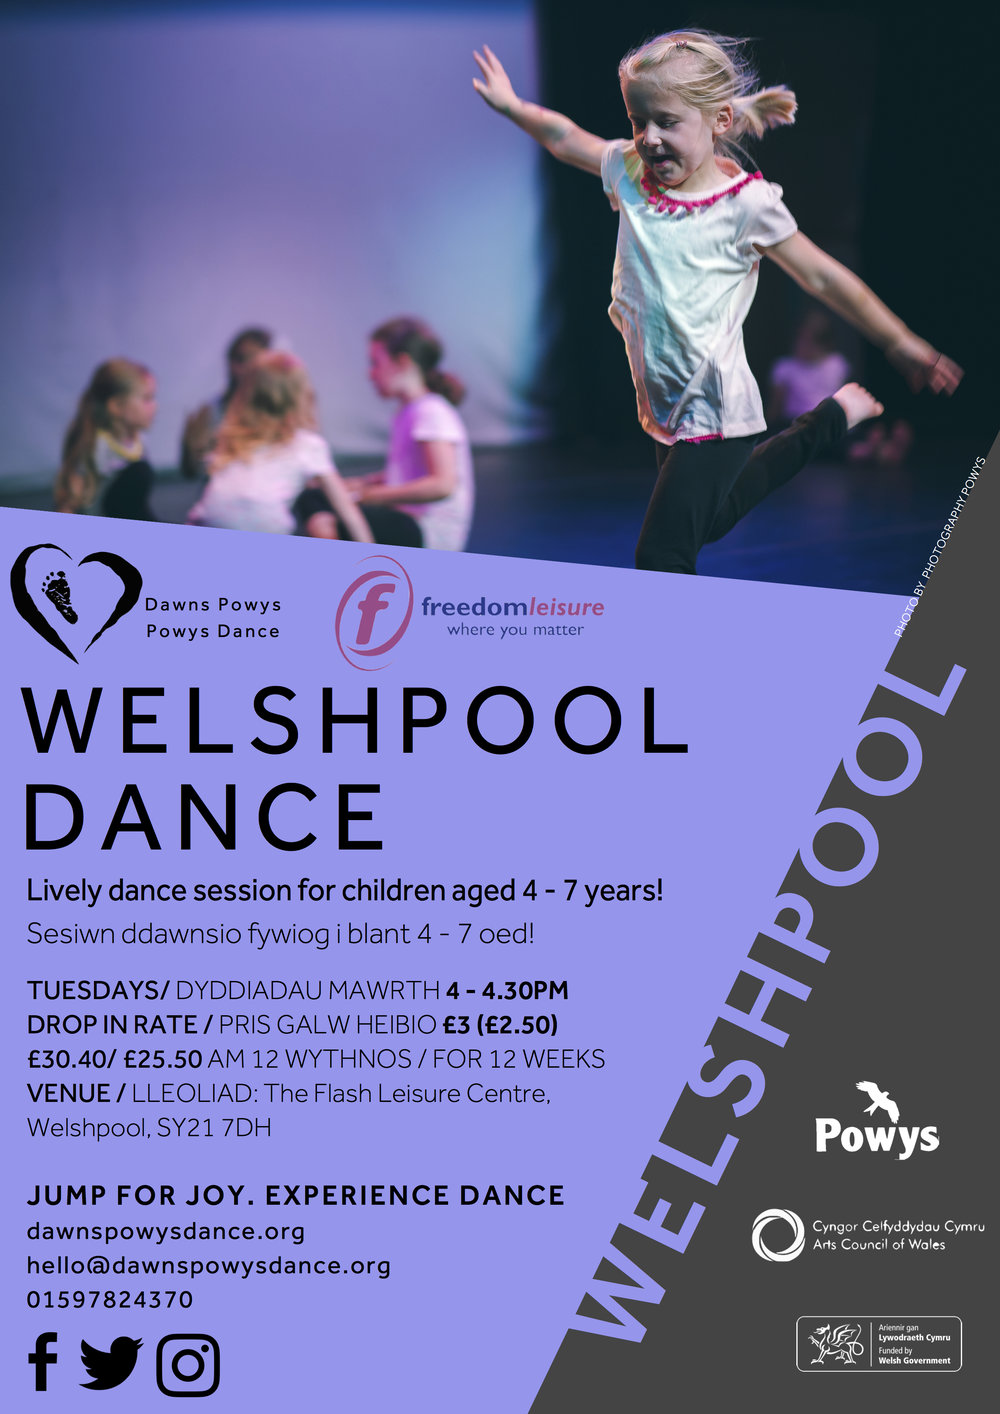 WELSHPOOL DANCE 2019 4 - 7 years.jpg